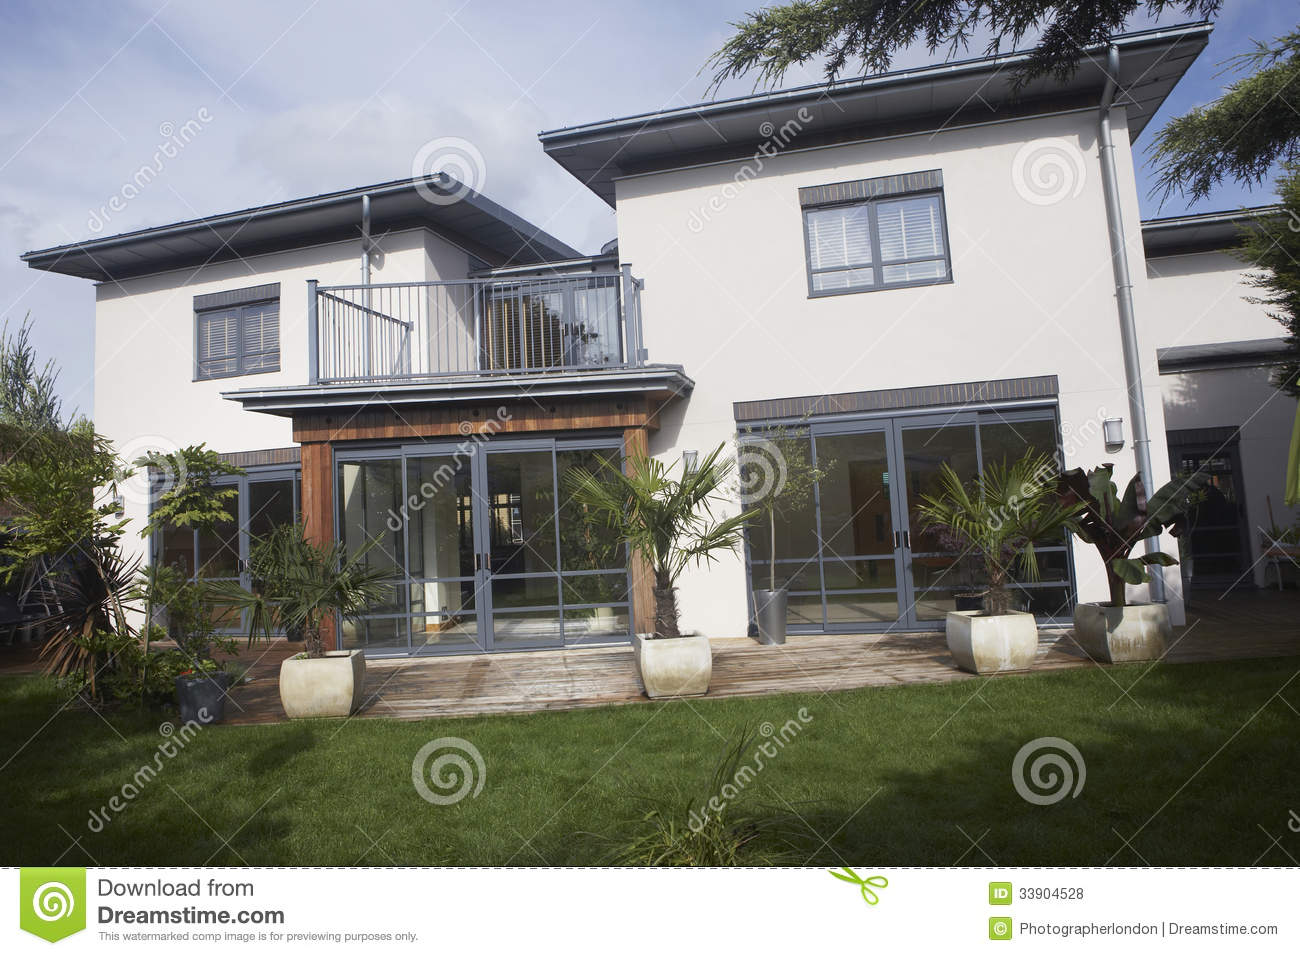 Royalty Free Stock Photos House Balcony Lawn Exterior Shot New Image33904528 on Two Story House Plans With Balconies